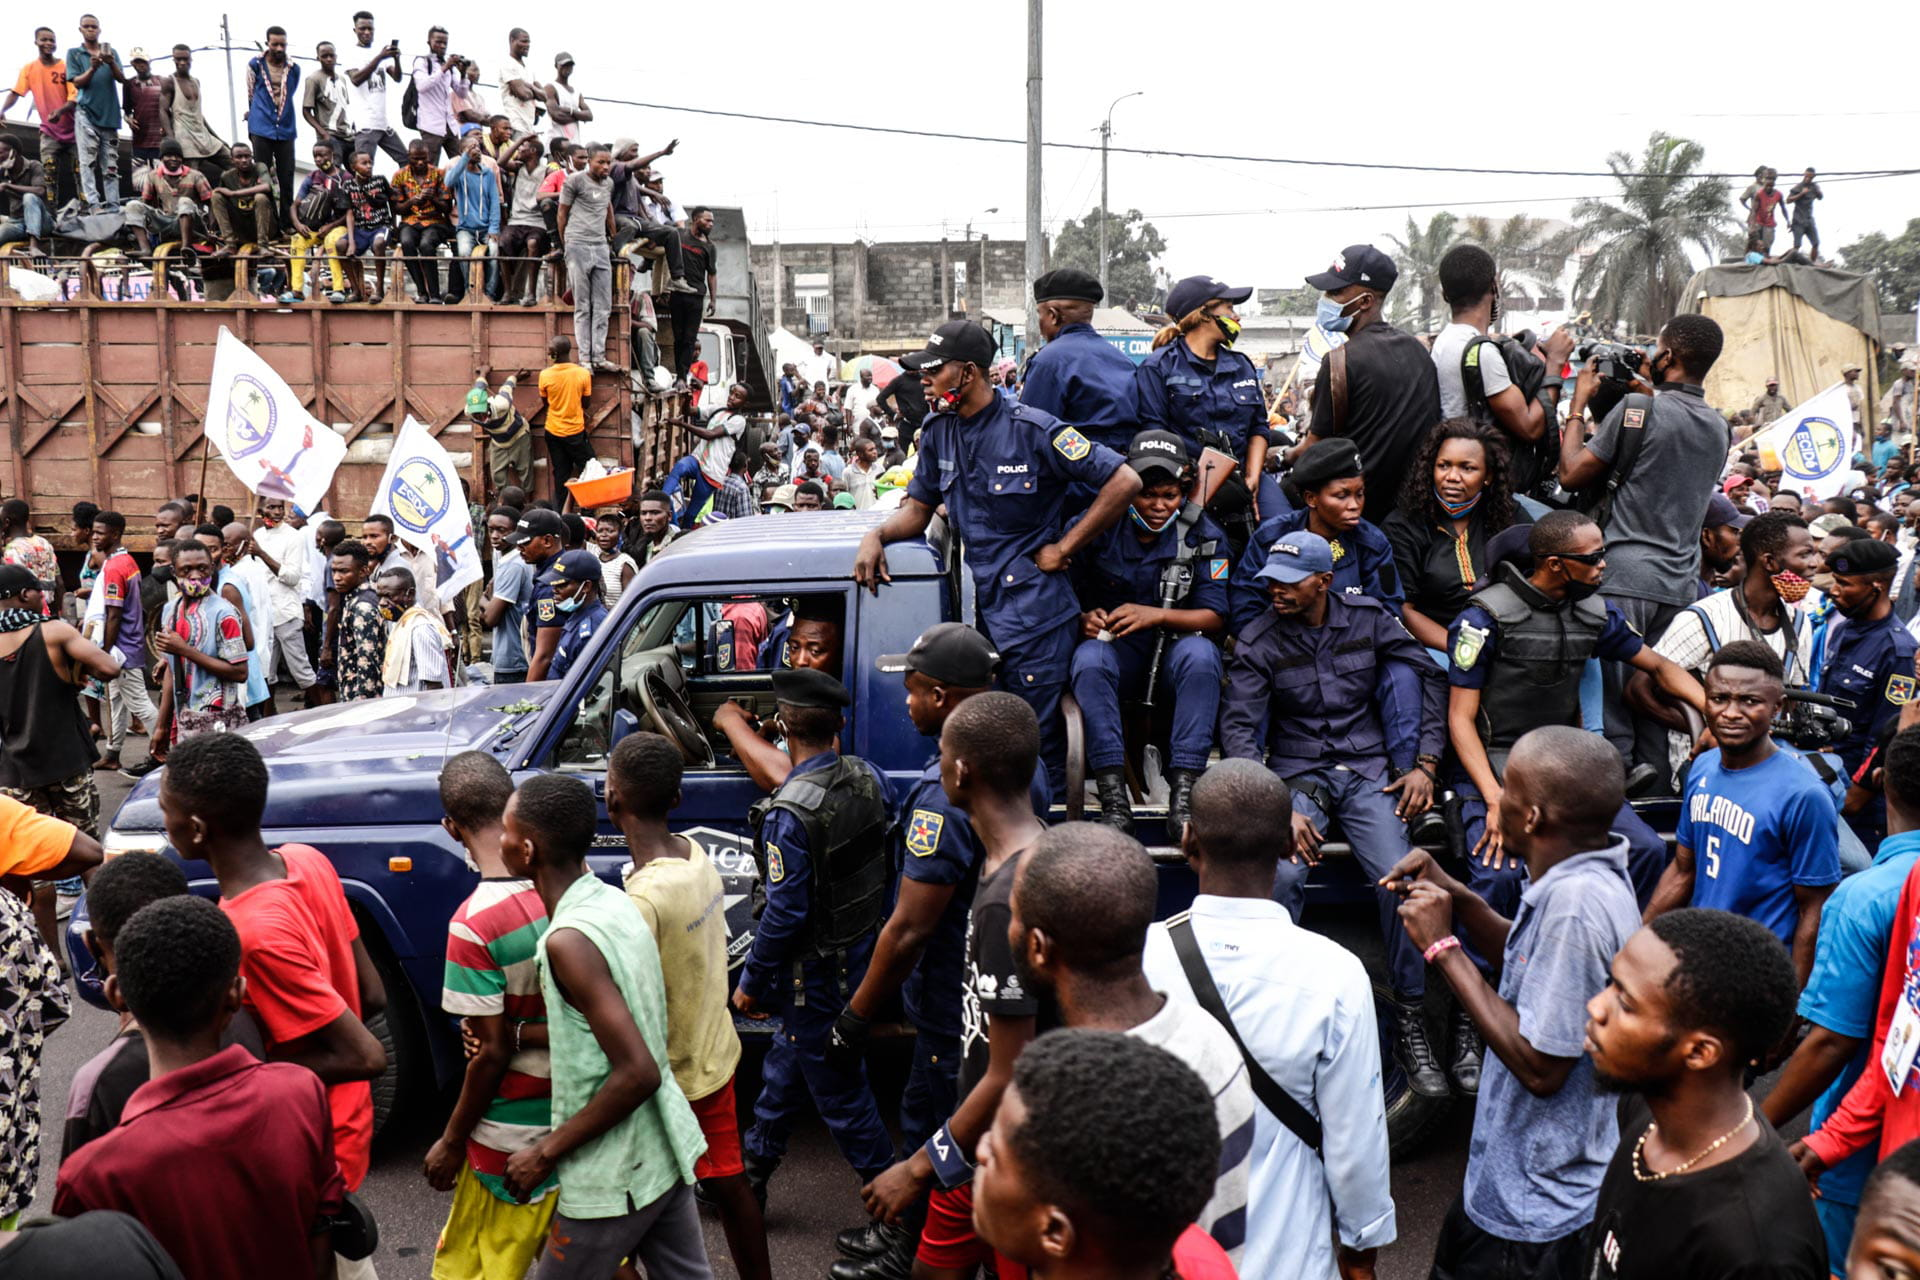 Kinshasa, DRC, August 23th 2020. Police watch as supporters line the streets waiting to catch a glimpse of Lamuka opposition party leader Martin Fayulu as he returned to Kinshasa this week after being stuck in the United States for five months due to coronavirus travel restrictions. © Justin Makangara for Fondation Carmignac